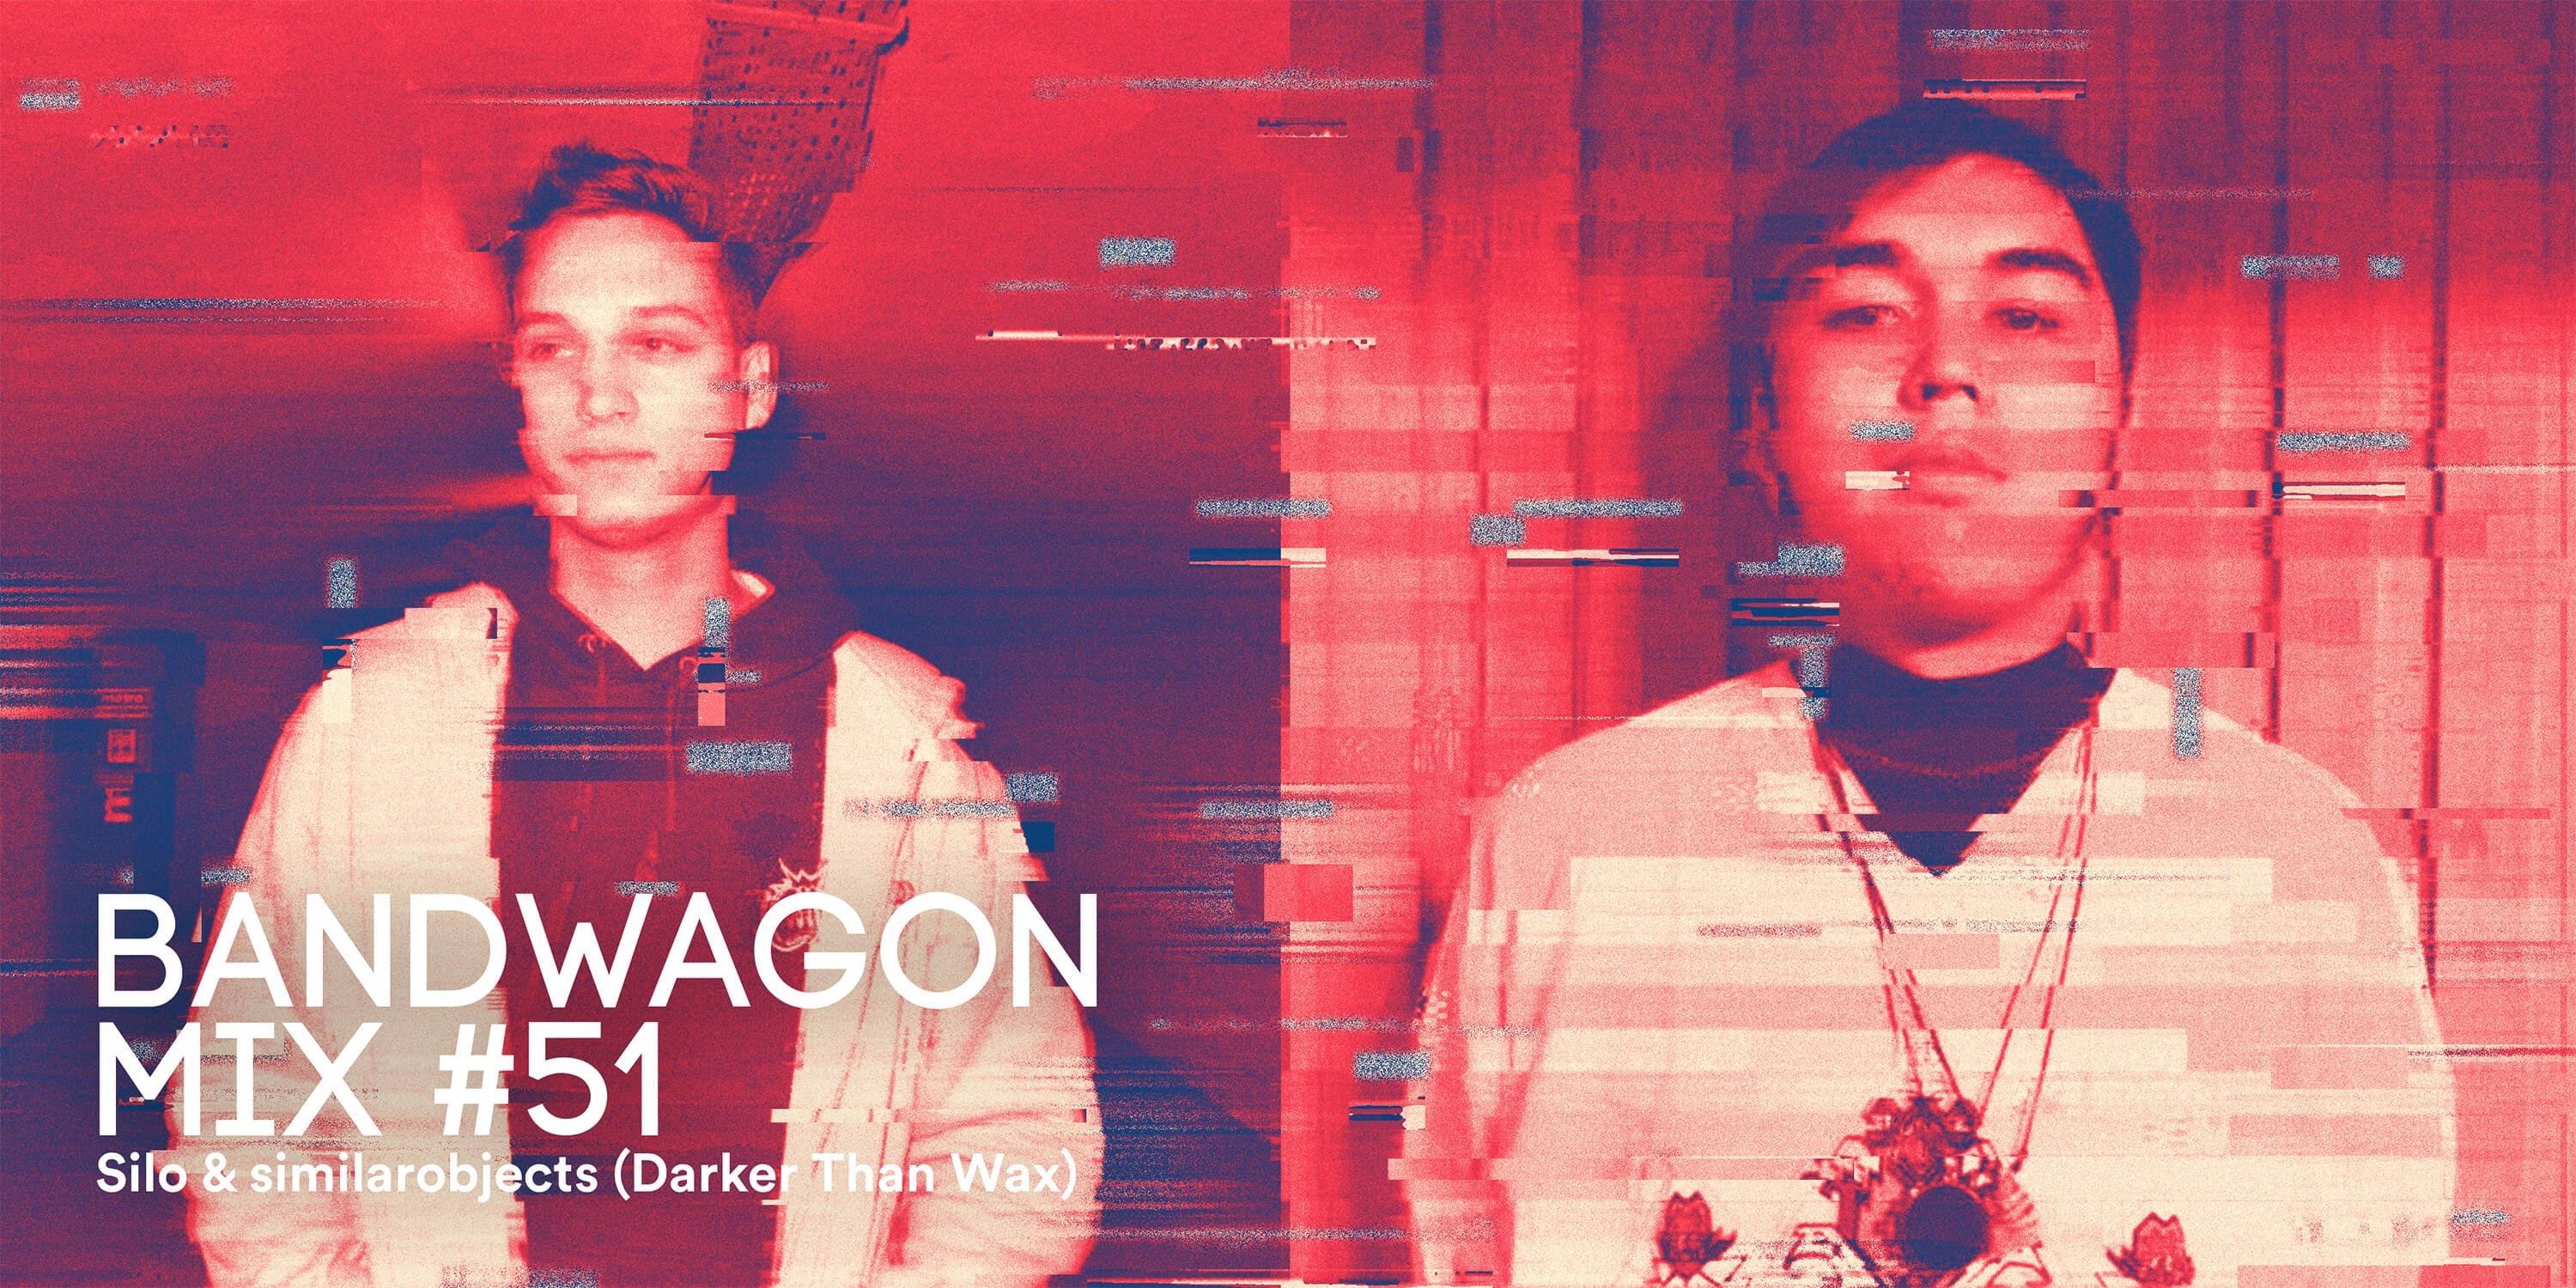 Bandwagon Mix #51: Silo & similarobjects (Darker Than Wax)